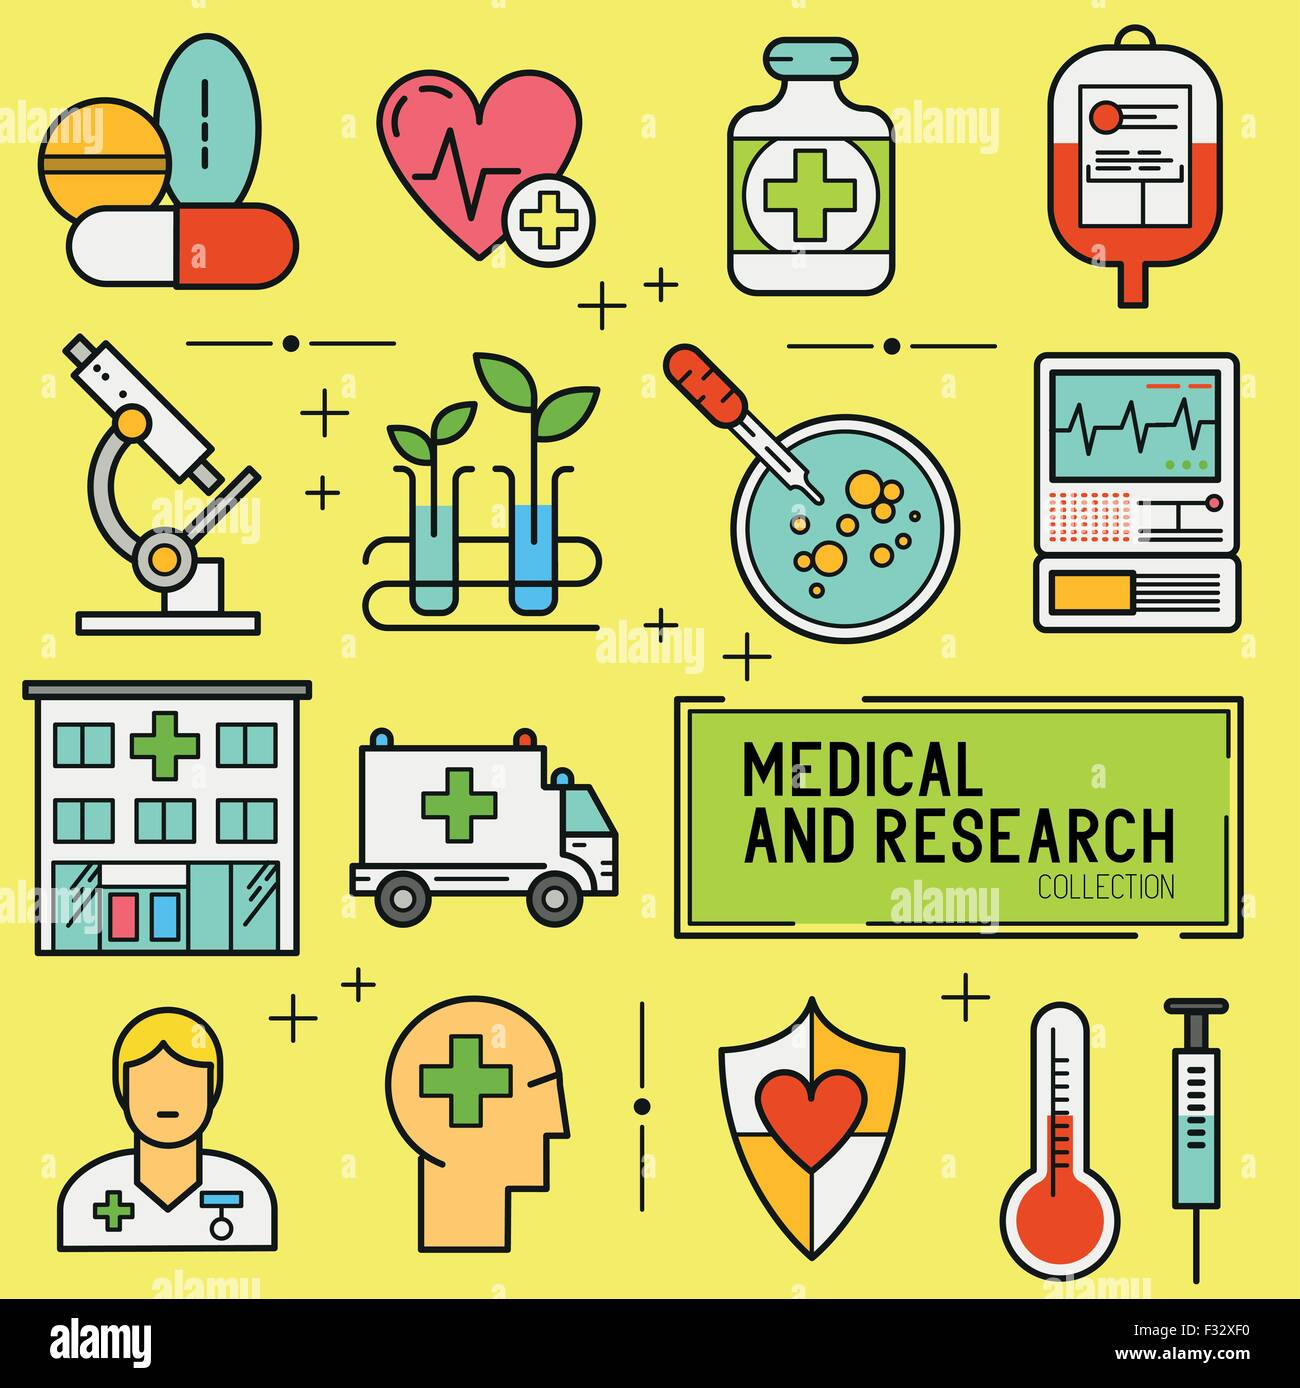 Medical and Research Icon Set. A collection of medical icons including, equipment, people and medical tools. - Stock Image